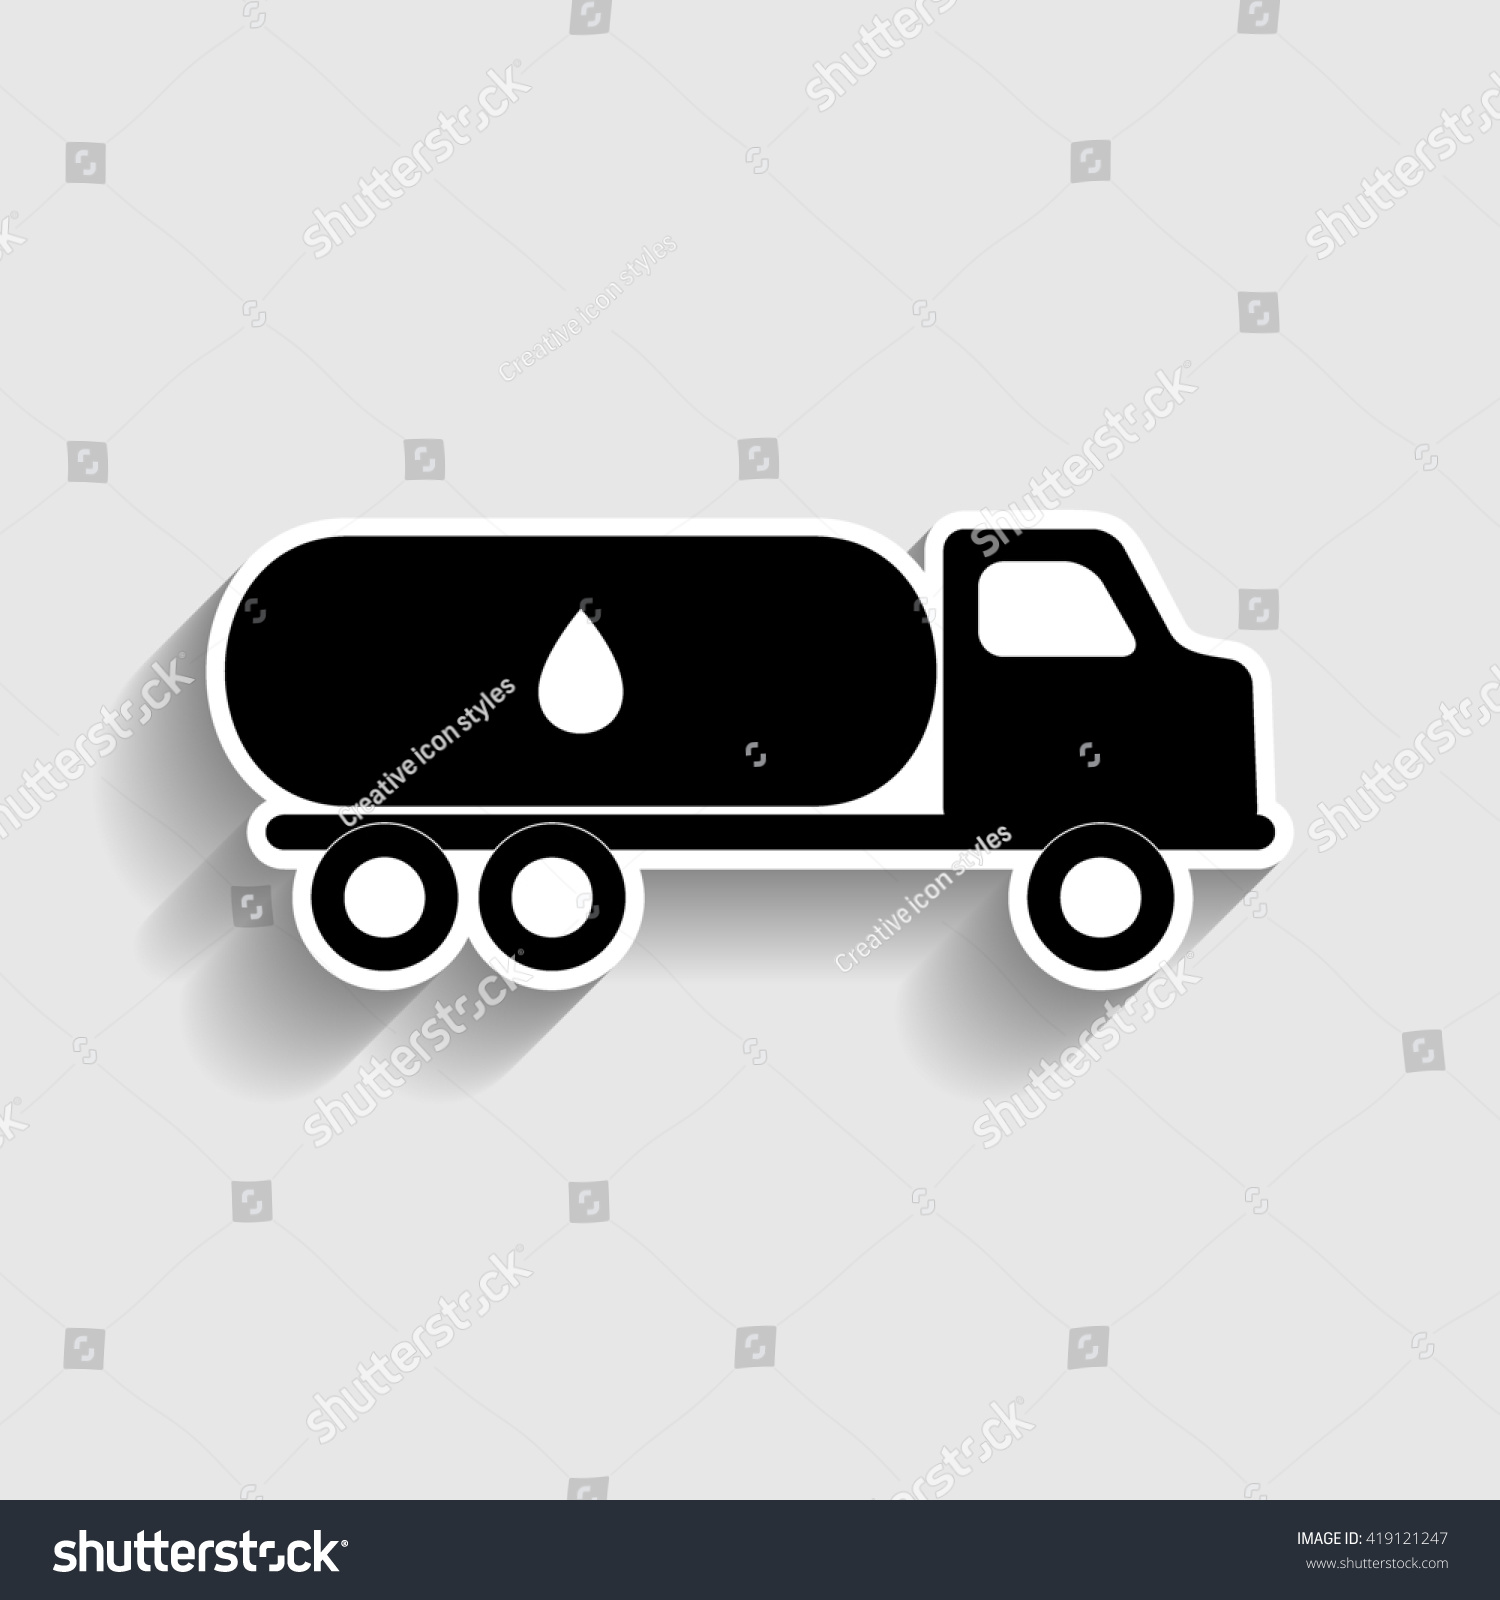 Royalty Free Stock Illustration Of Car Transports Oil Sign Stock